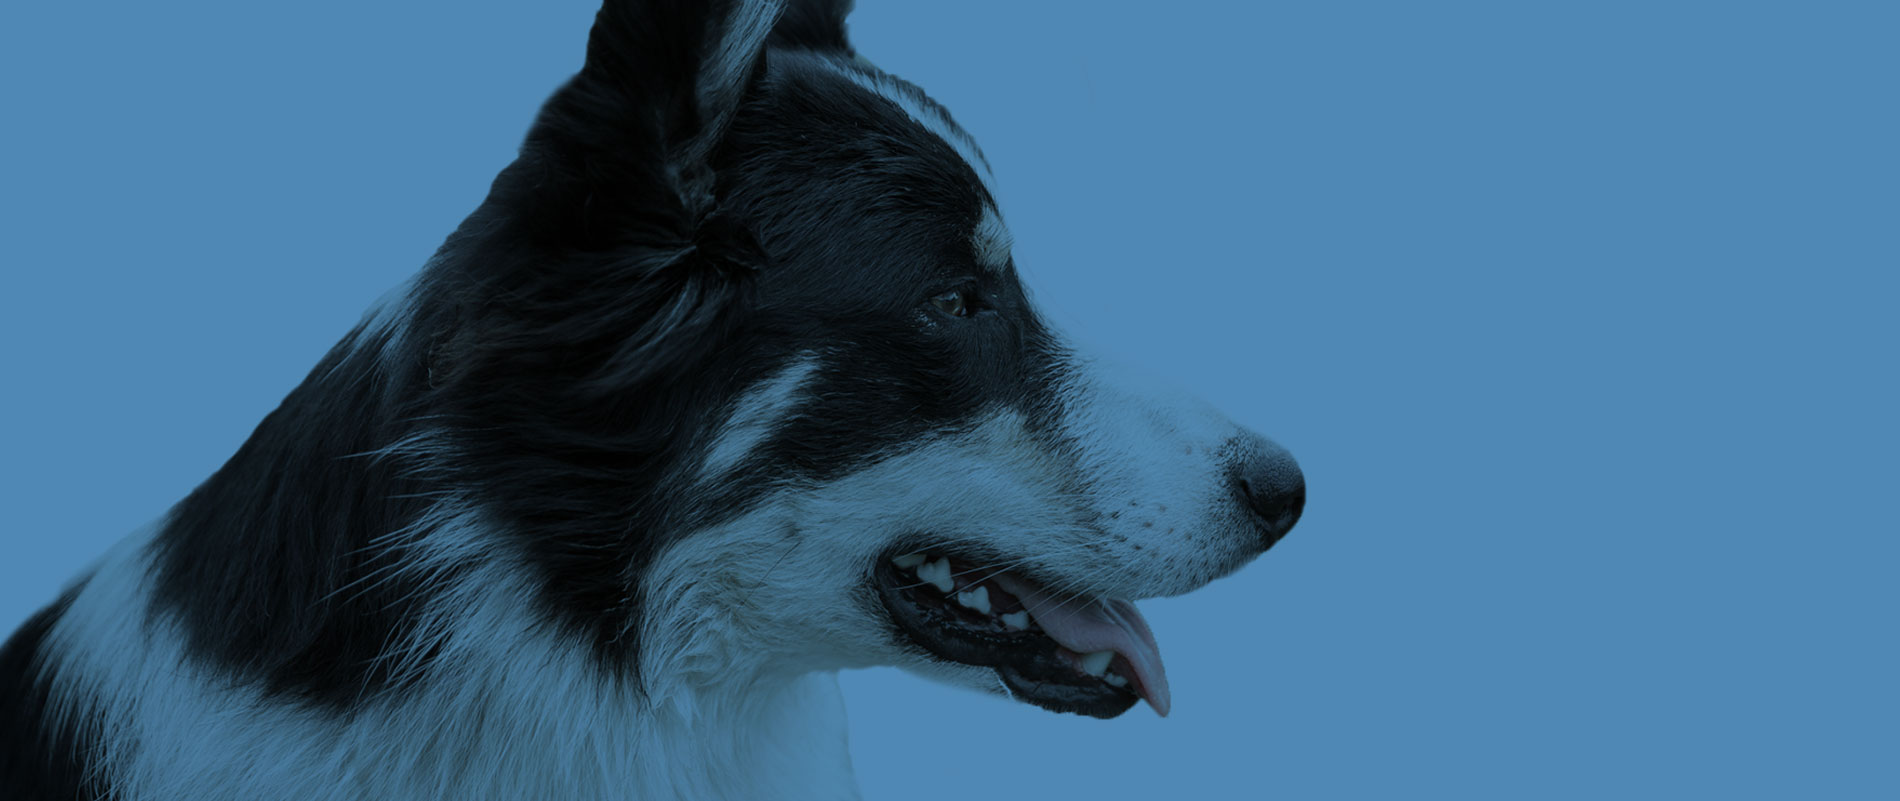 Profile Picture of a Border Collie Dog | Professional Plus Pet Food